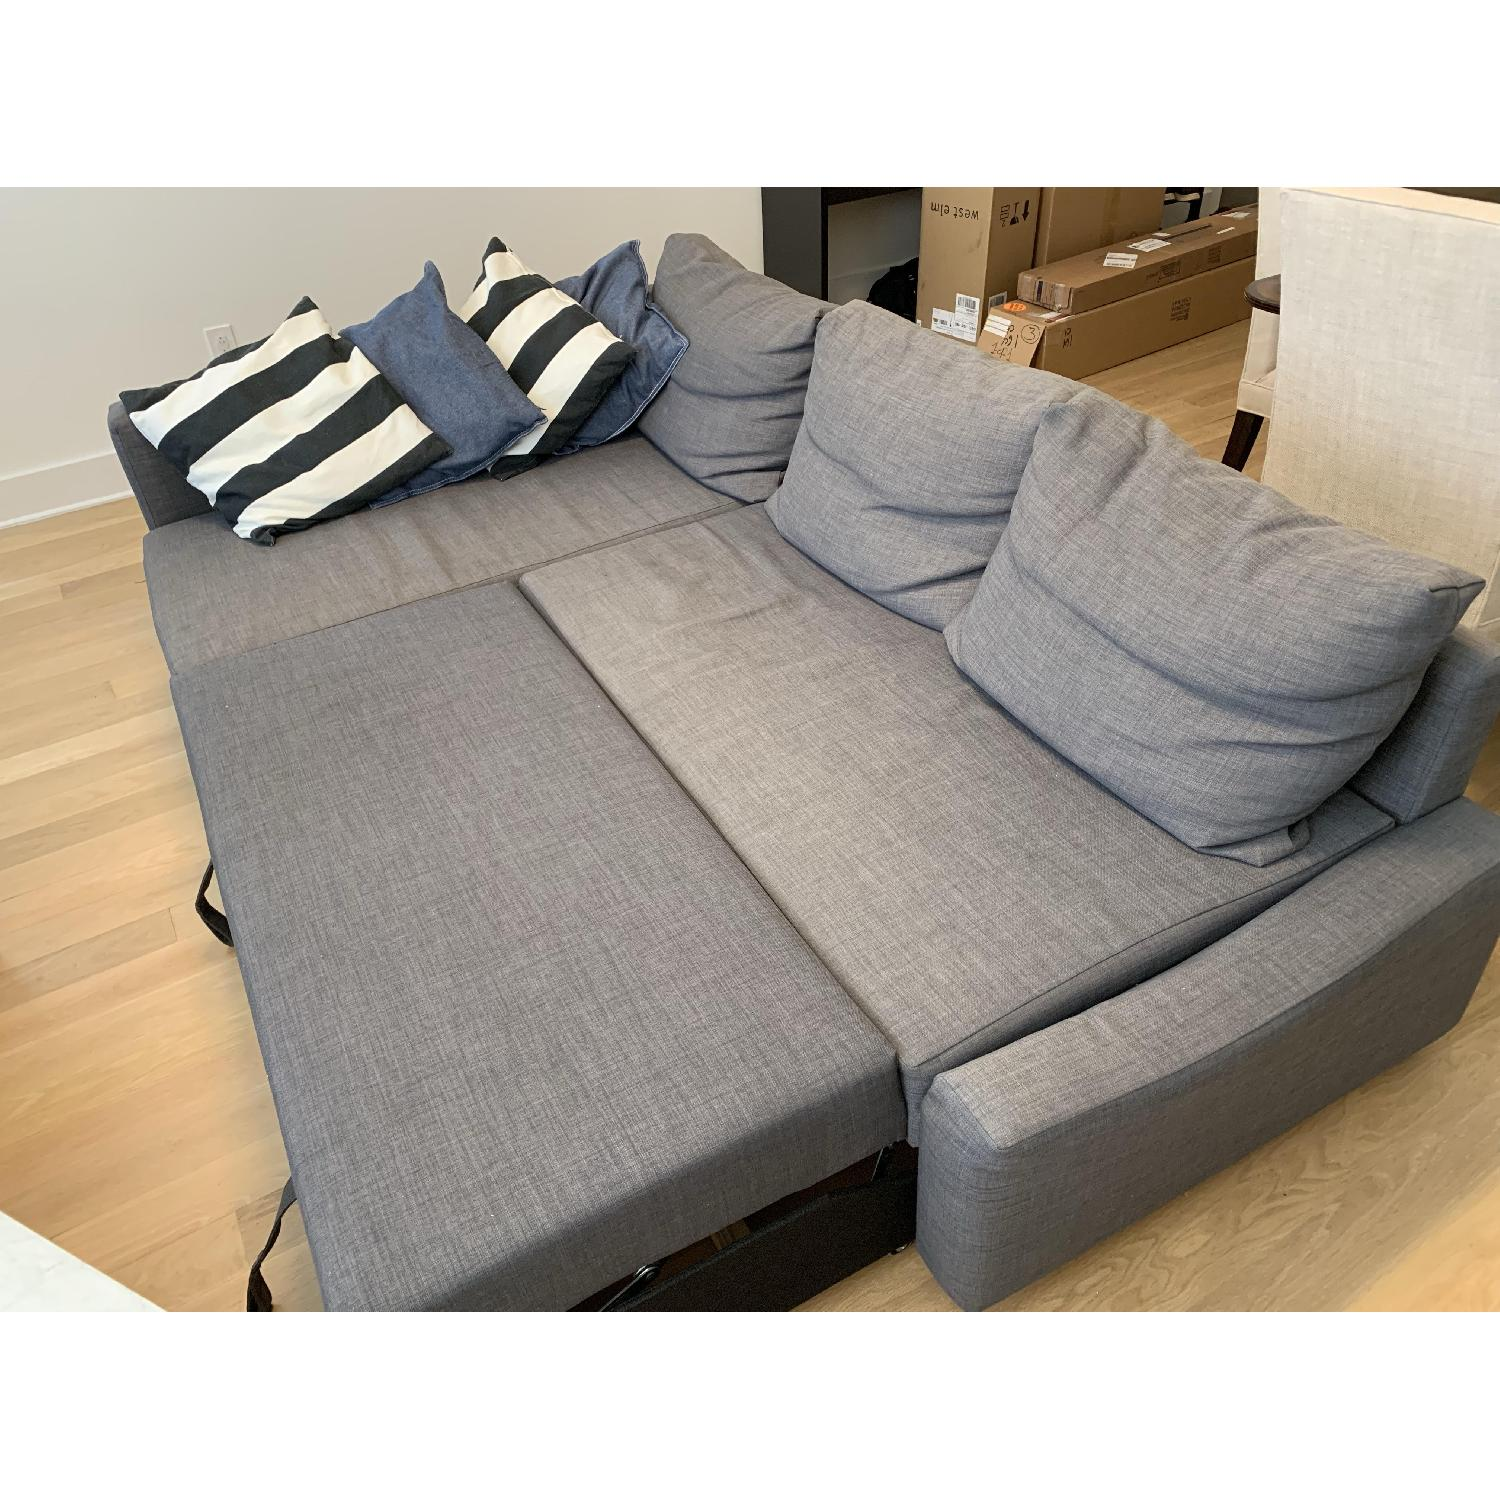 Astonishing Ikea Friheten Sleeper Sectional Sofa W Storage In Dark Gray Machost Co Dining Chair Design Ideas Machostcouk